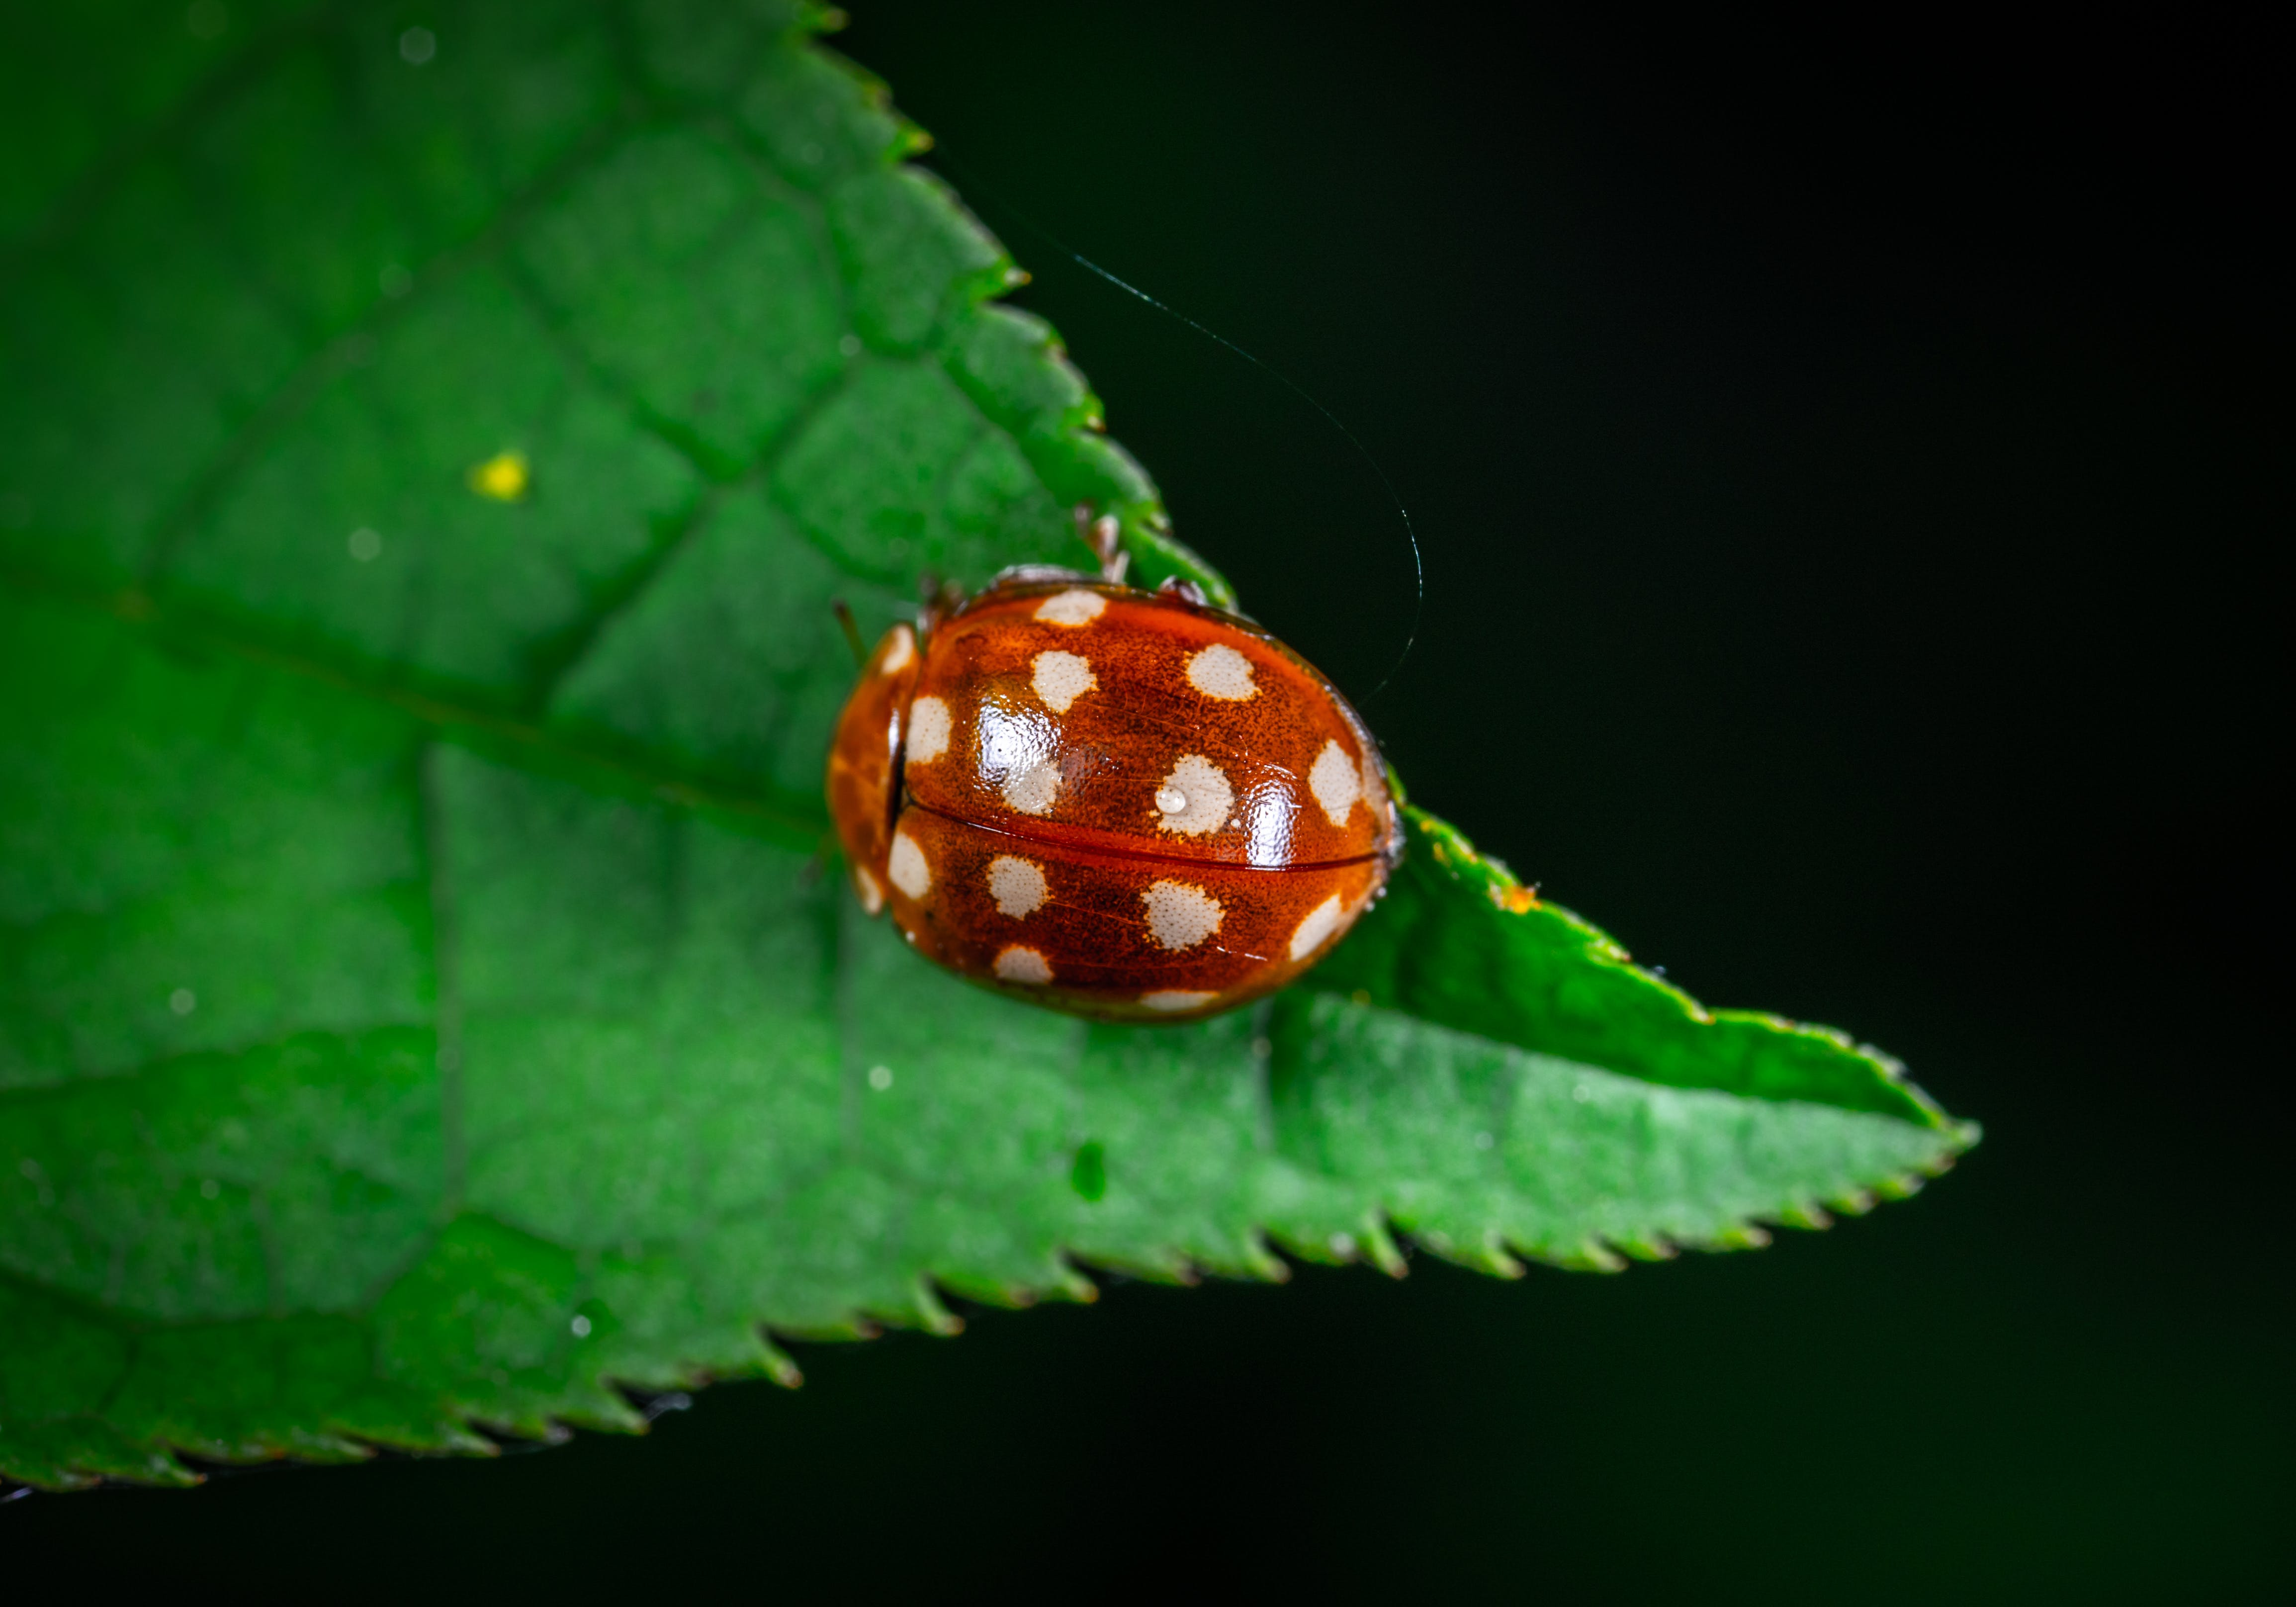 Macro Photography of Red Ladybug